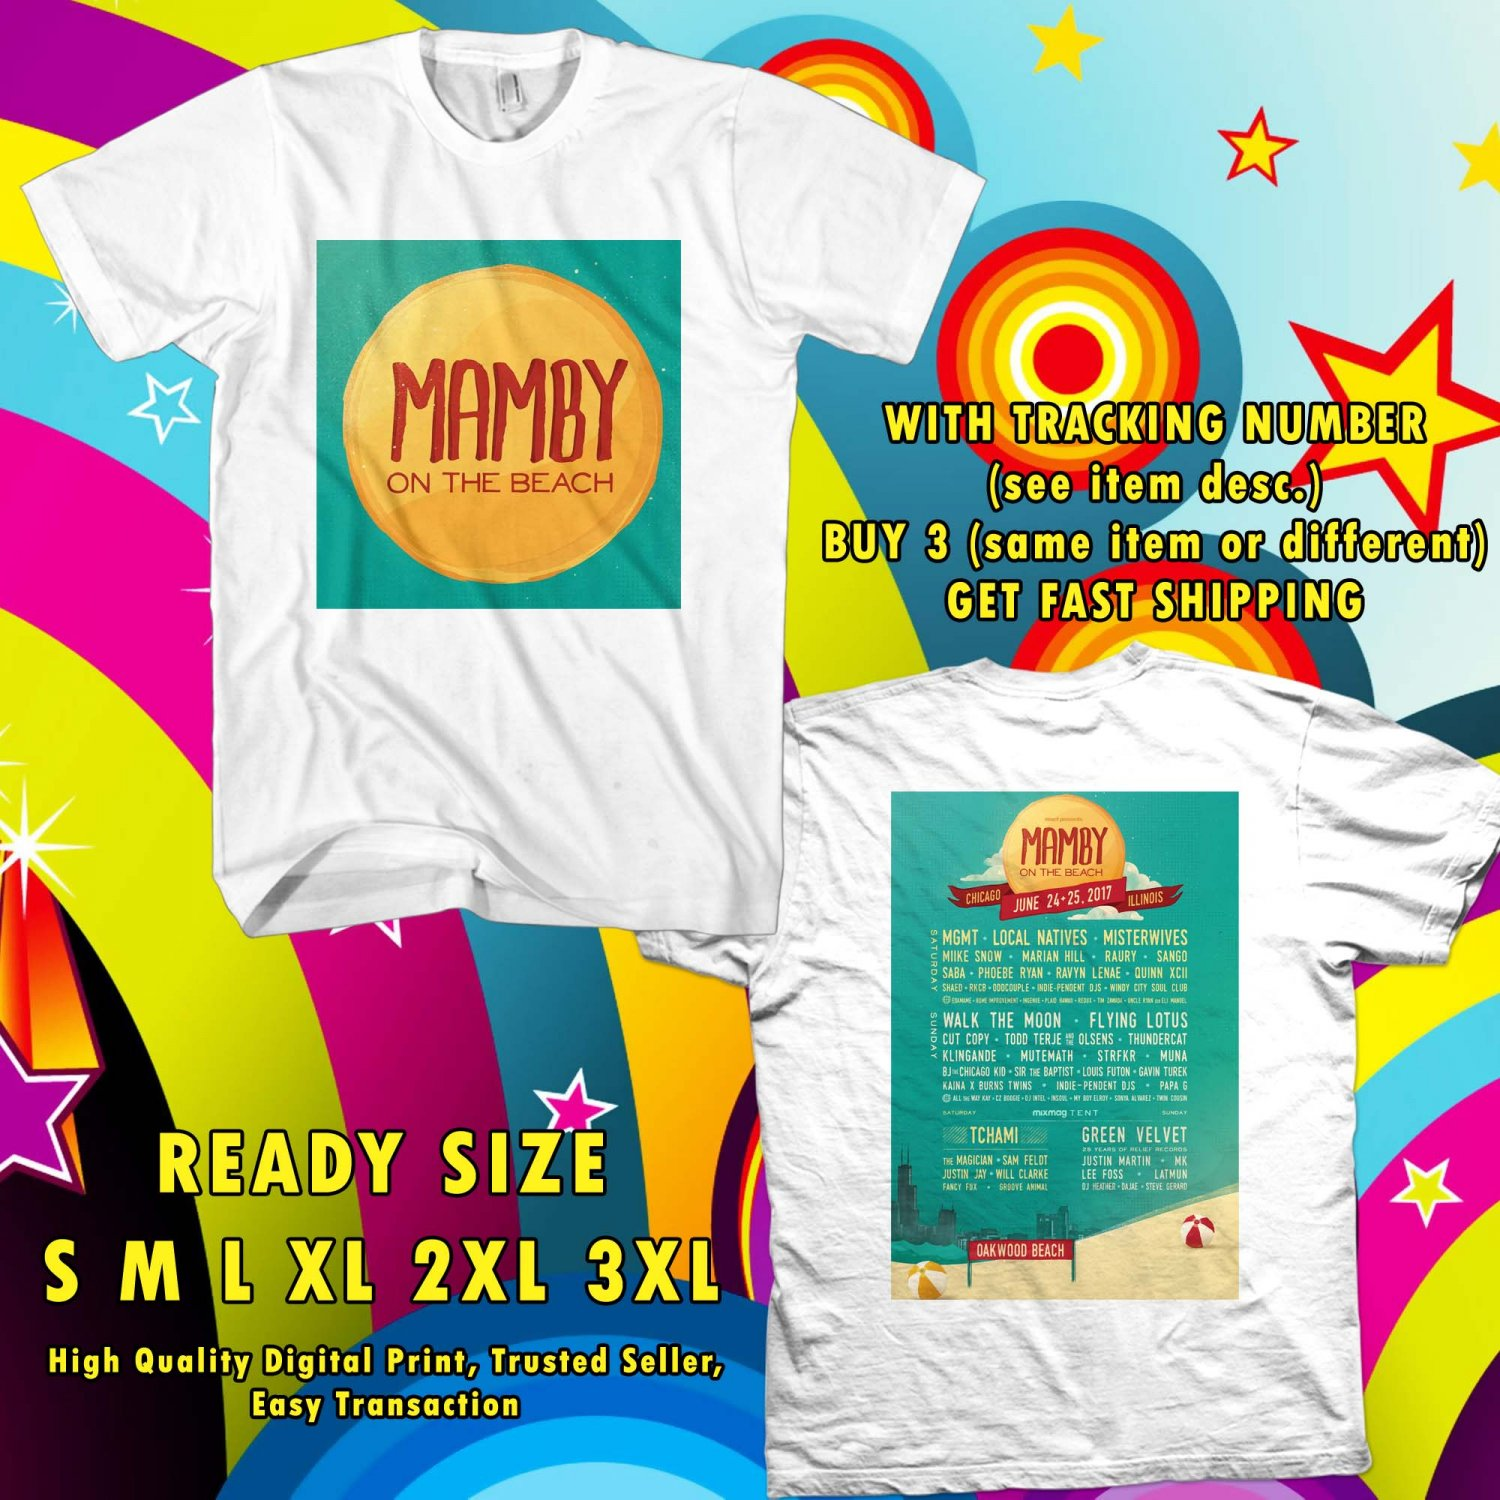 HITS MAMBY ON THE BEACH JUN 2017 WHITE TEE'S 2SIDE MAN WOMEN ASTR